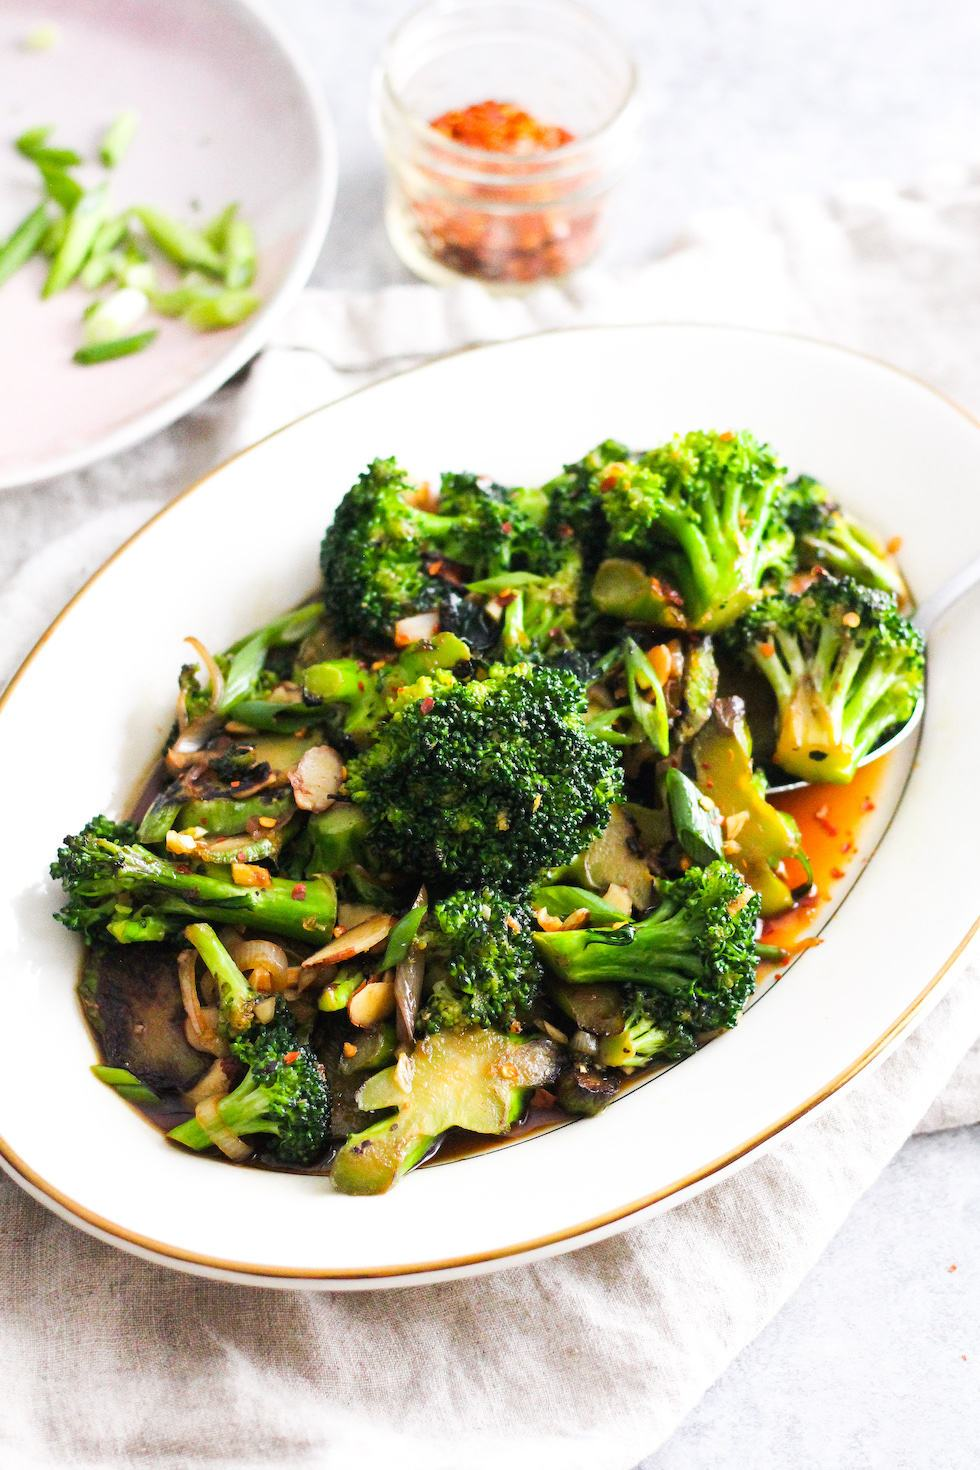 Broccoli stir-fry on a white platter for easy college meals